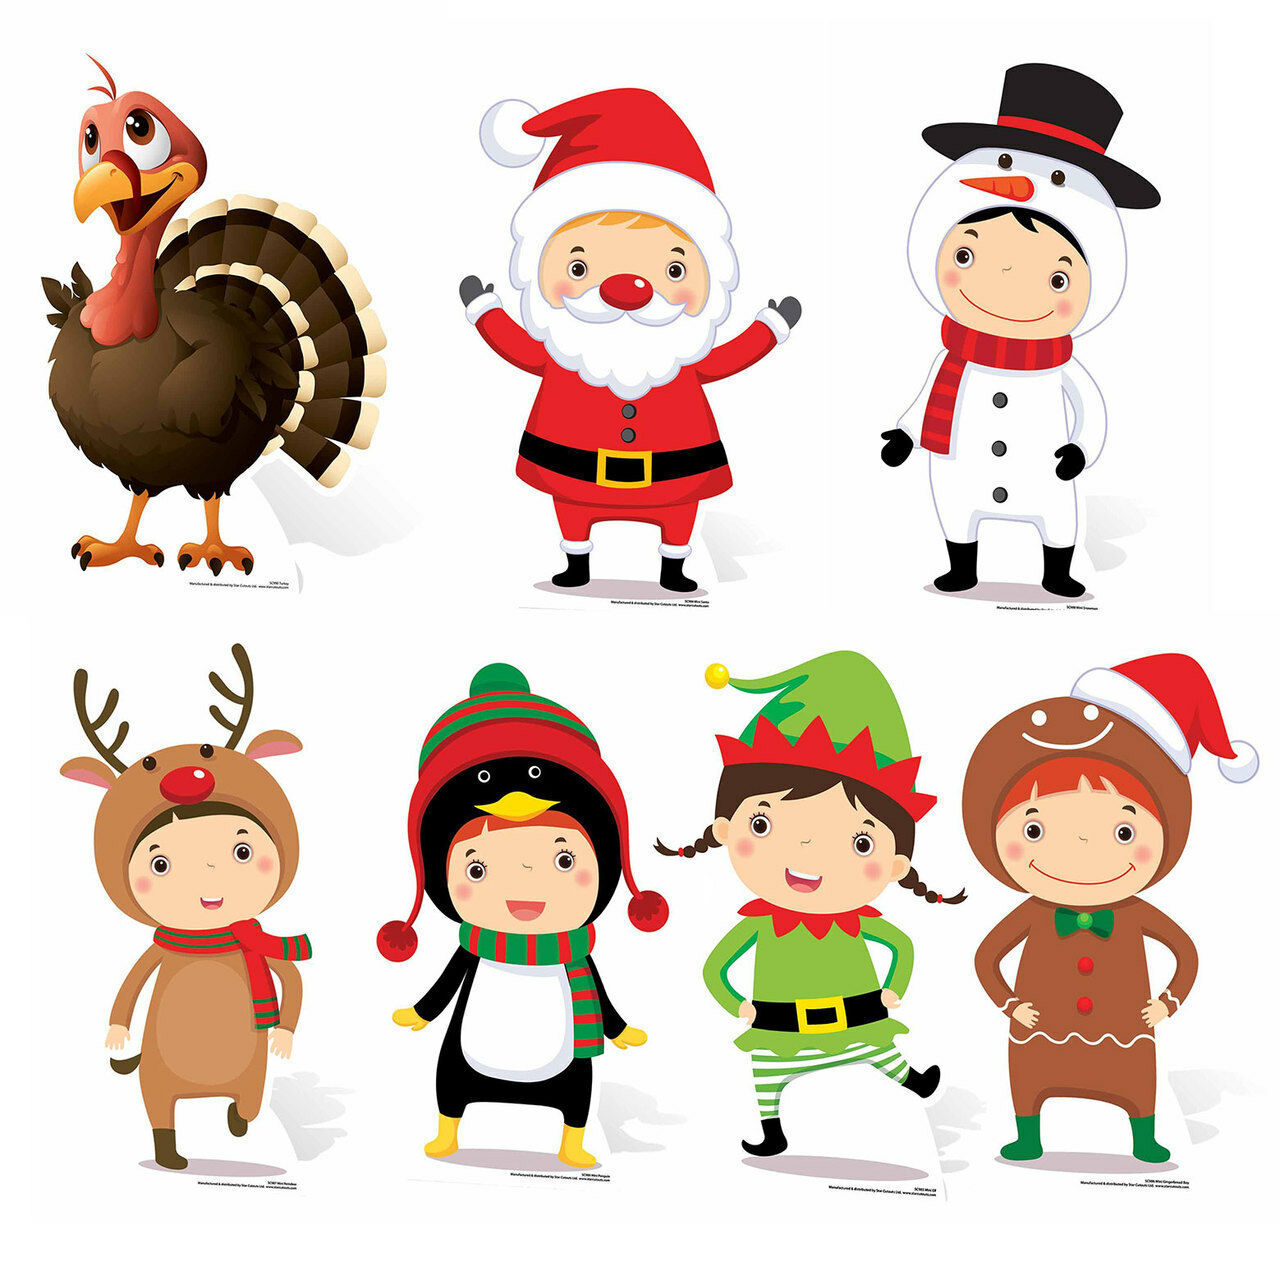 Mini Christmas Cardboard Cutouts Complete Set of 7    Standee   Standup festive